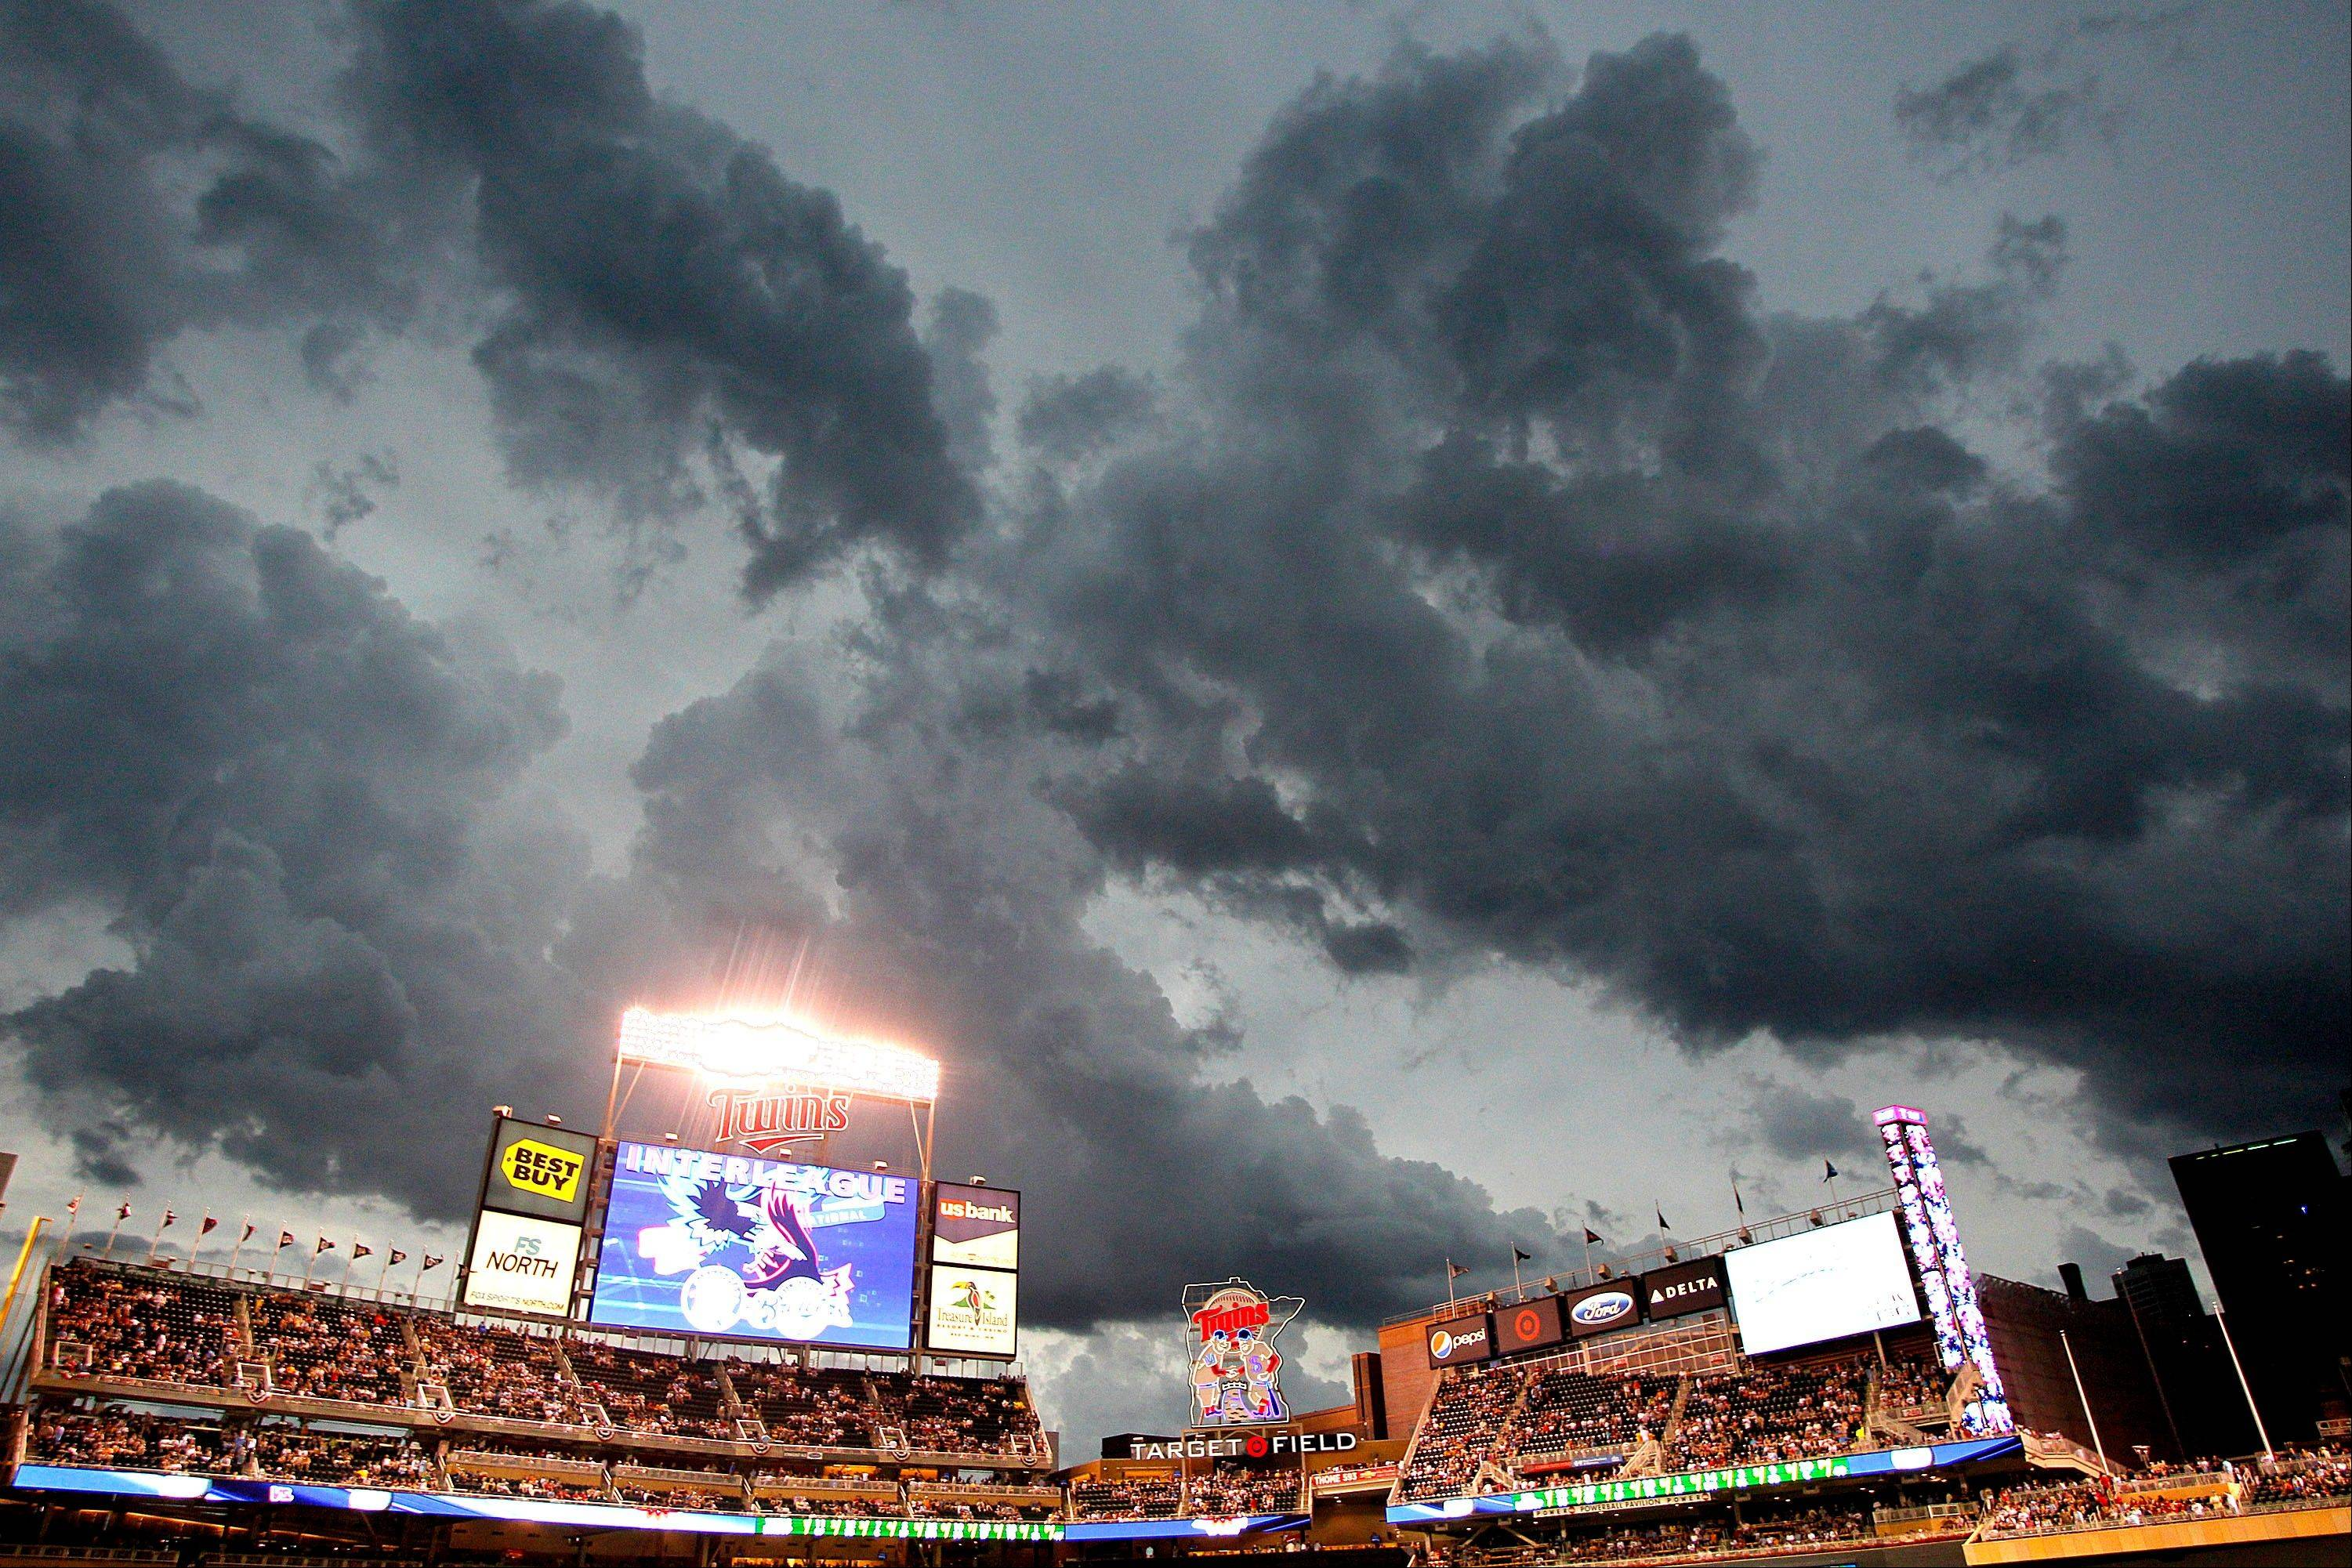 Storm clouds hover over Target field Friday, delaying the baseball game between the Milwaukee Brewers and the Minnesota Twins.